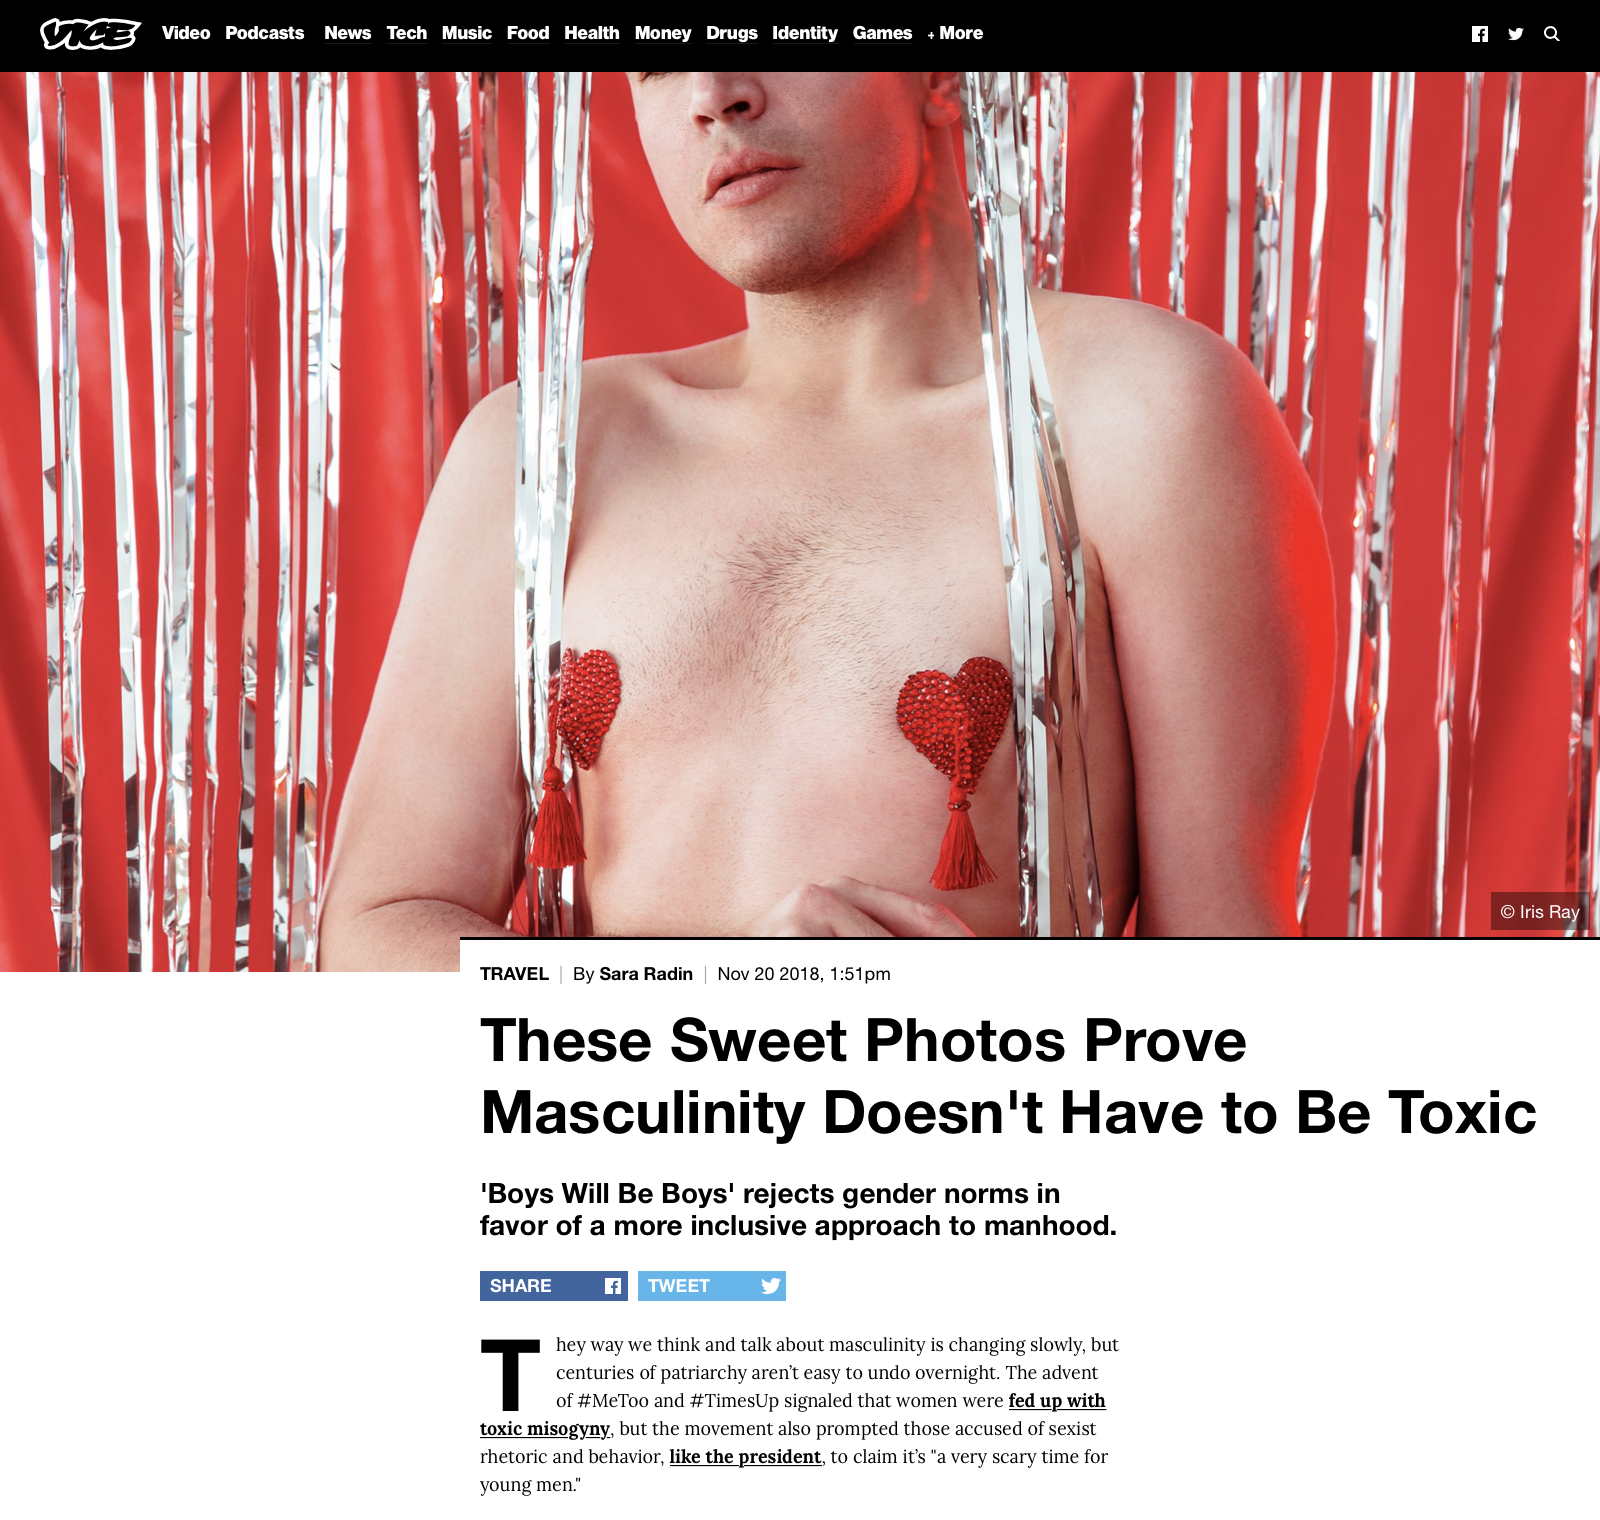 001_vice-tearsheet.png